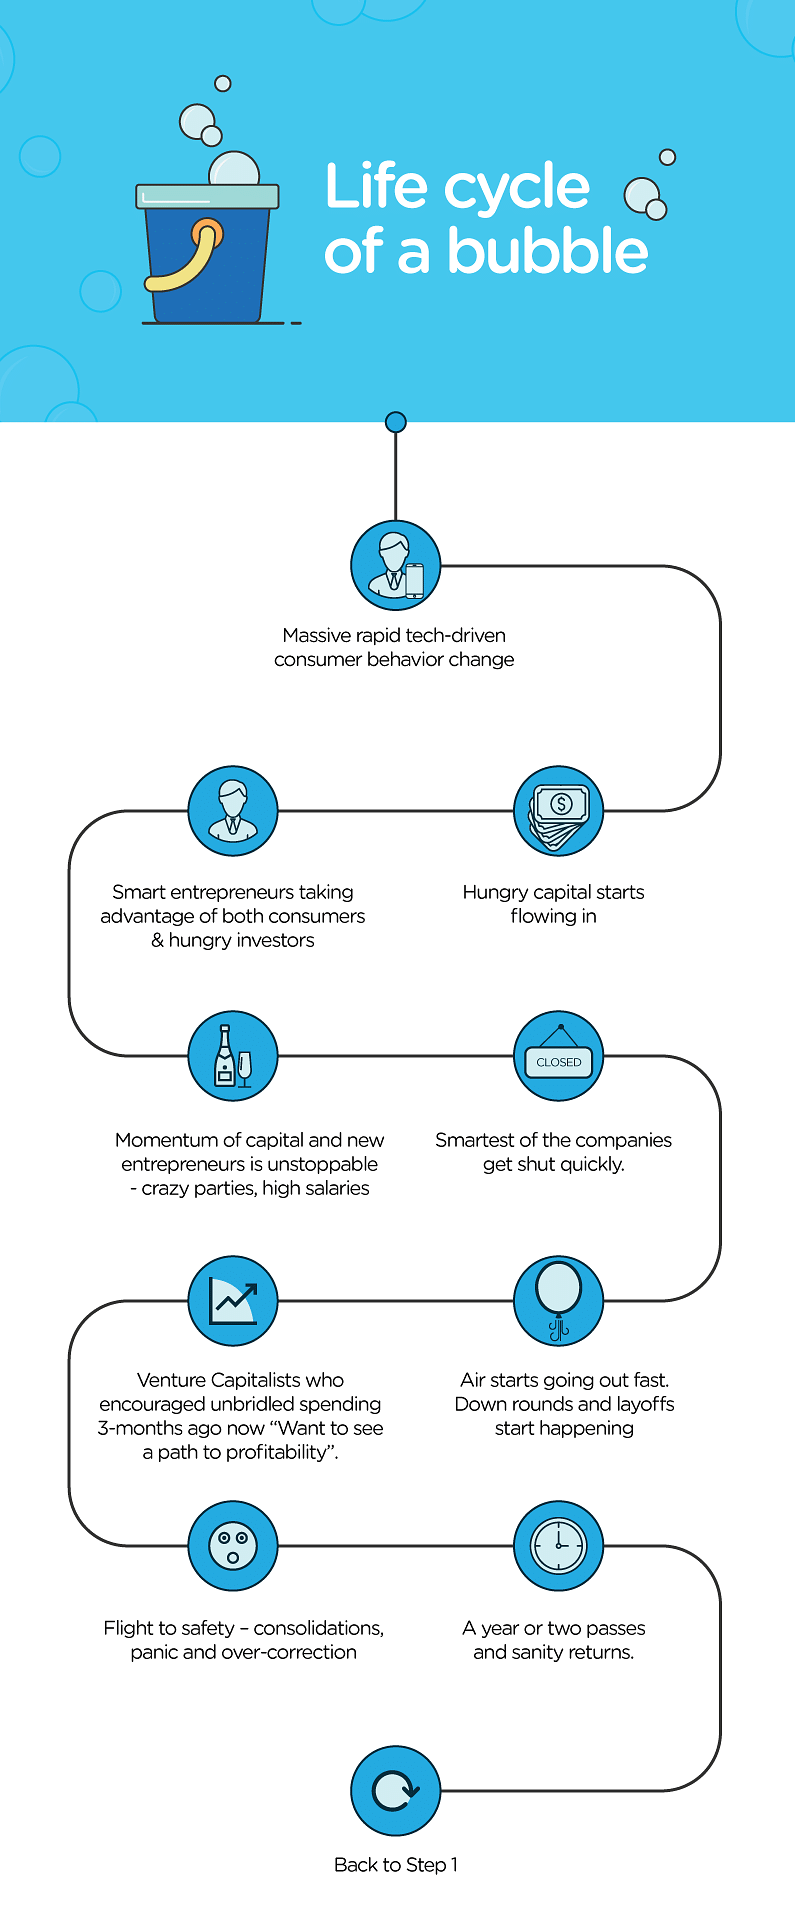 The life cycle of a bubble [Source: Bala Parthasarathy]